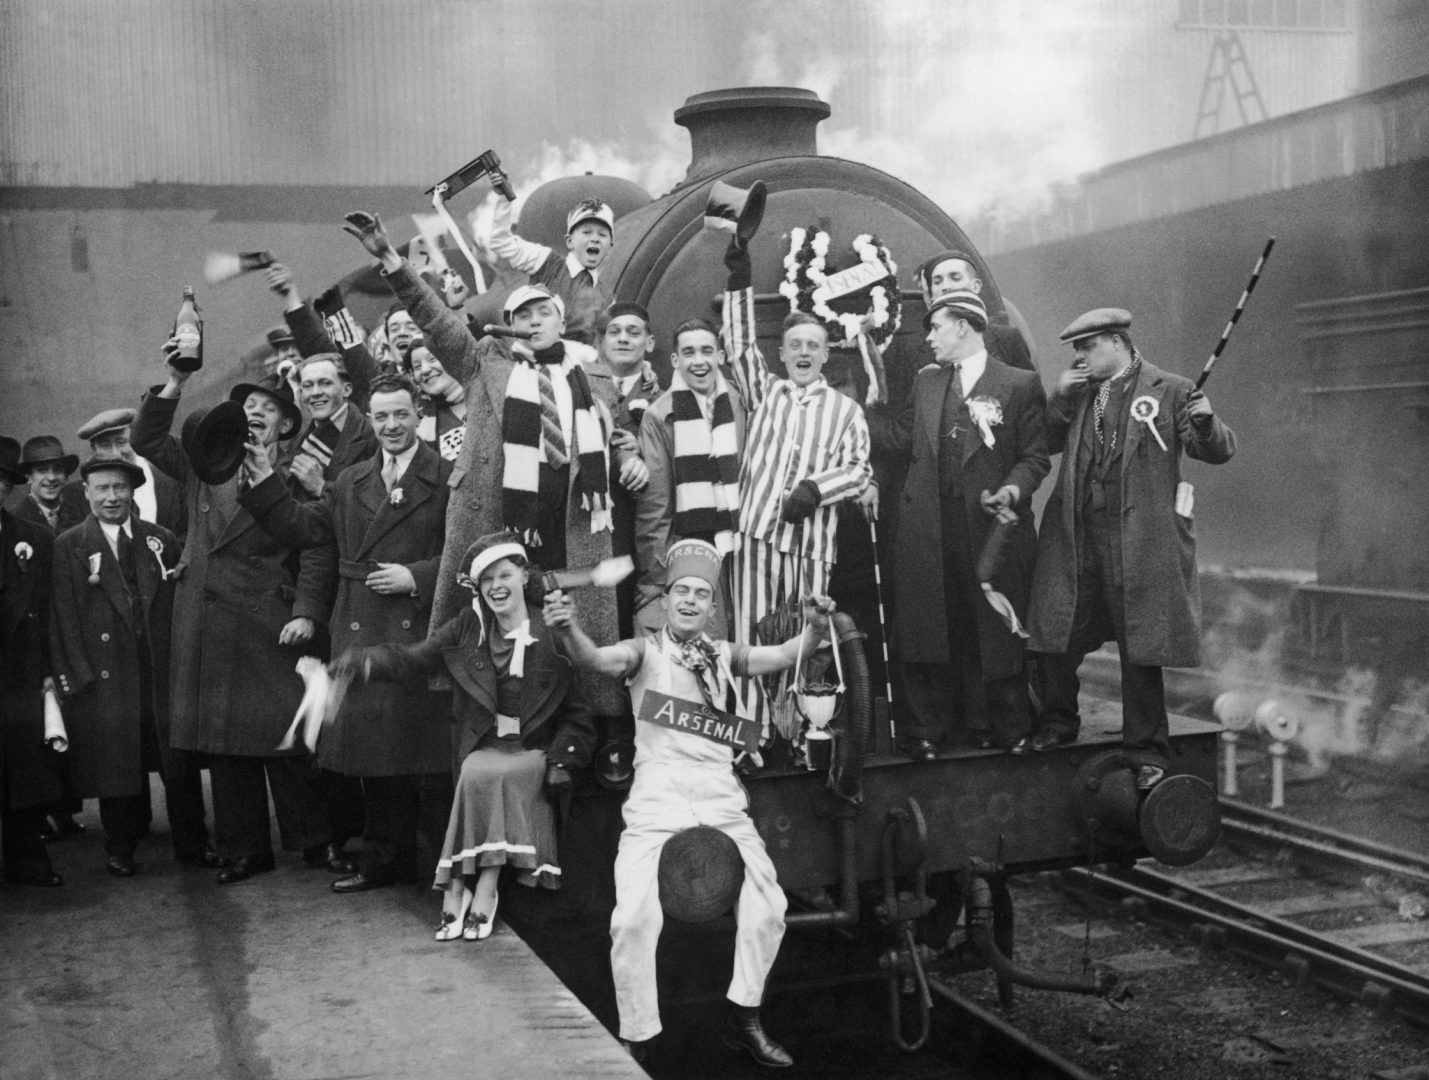 Today's football trains are a farce